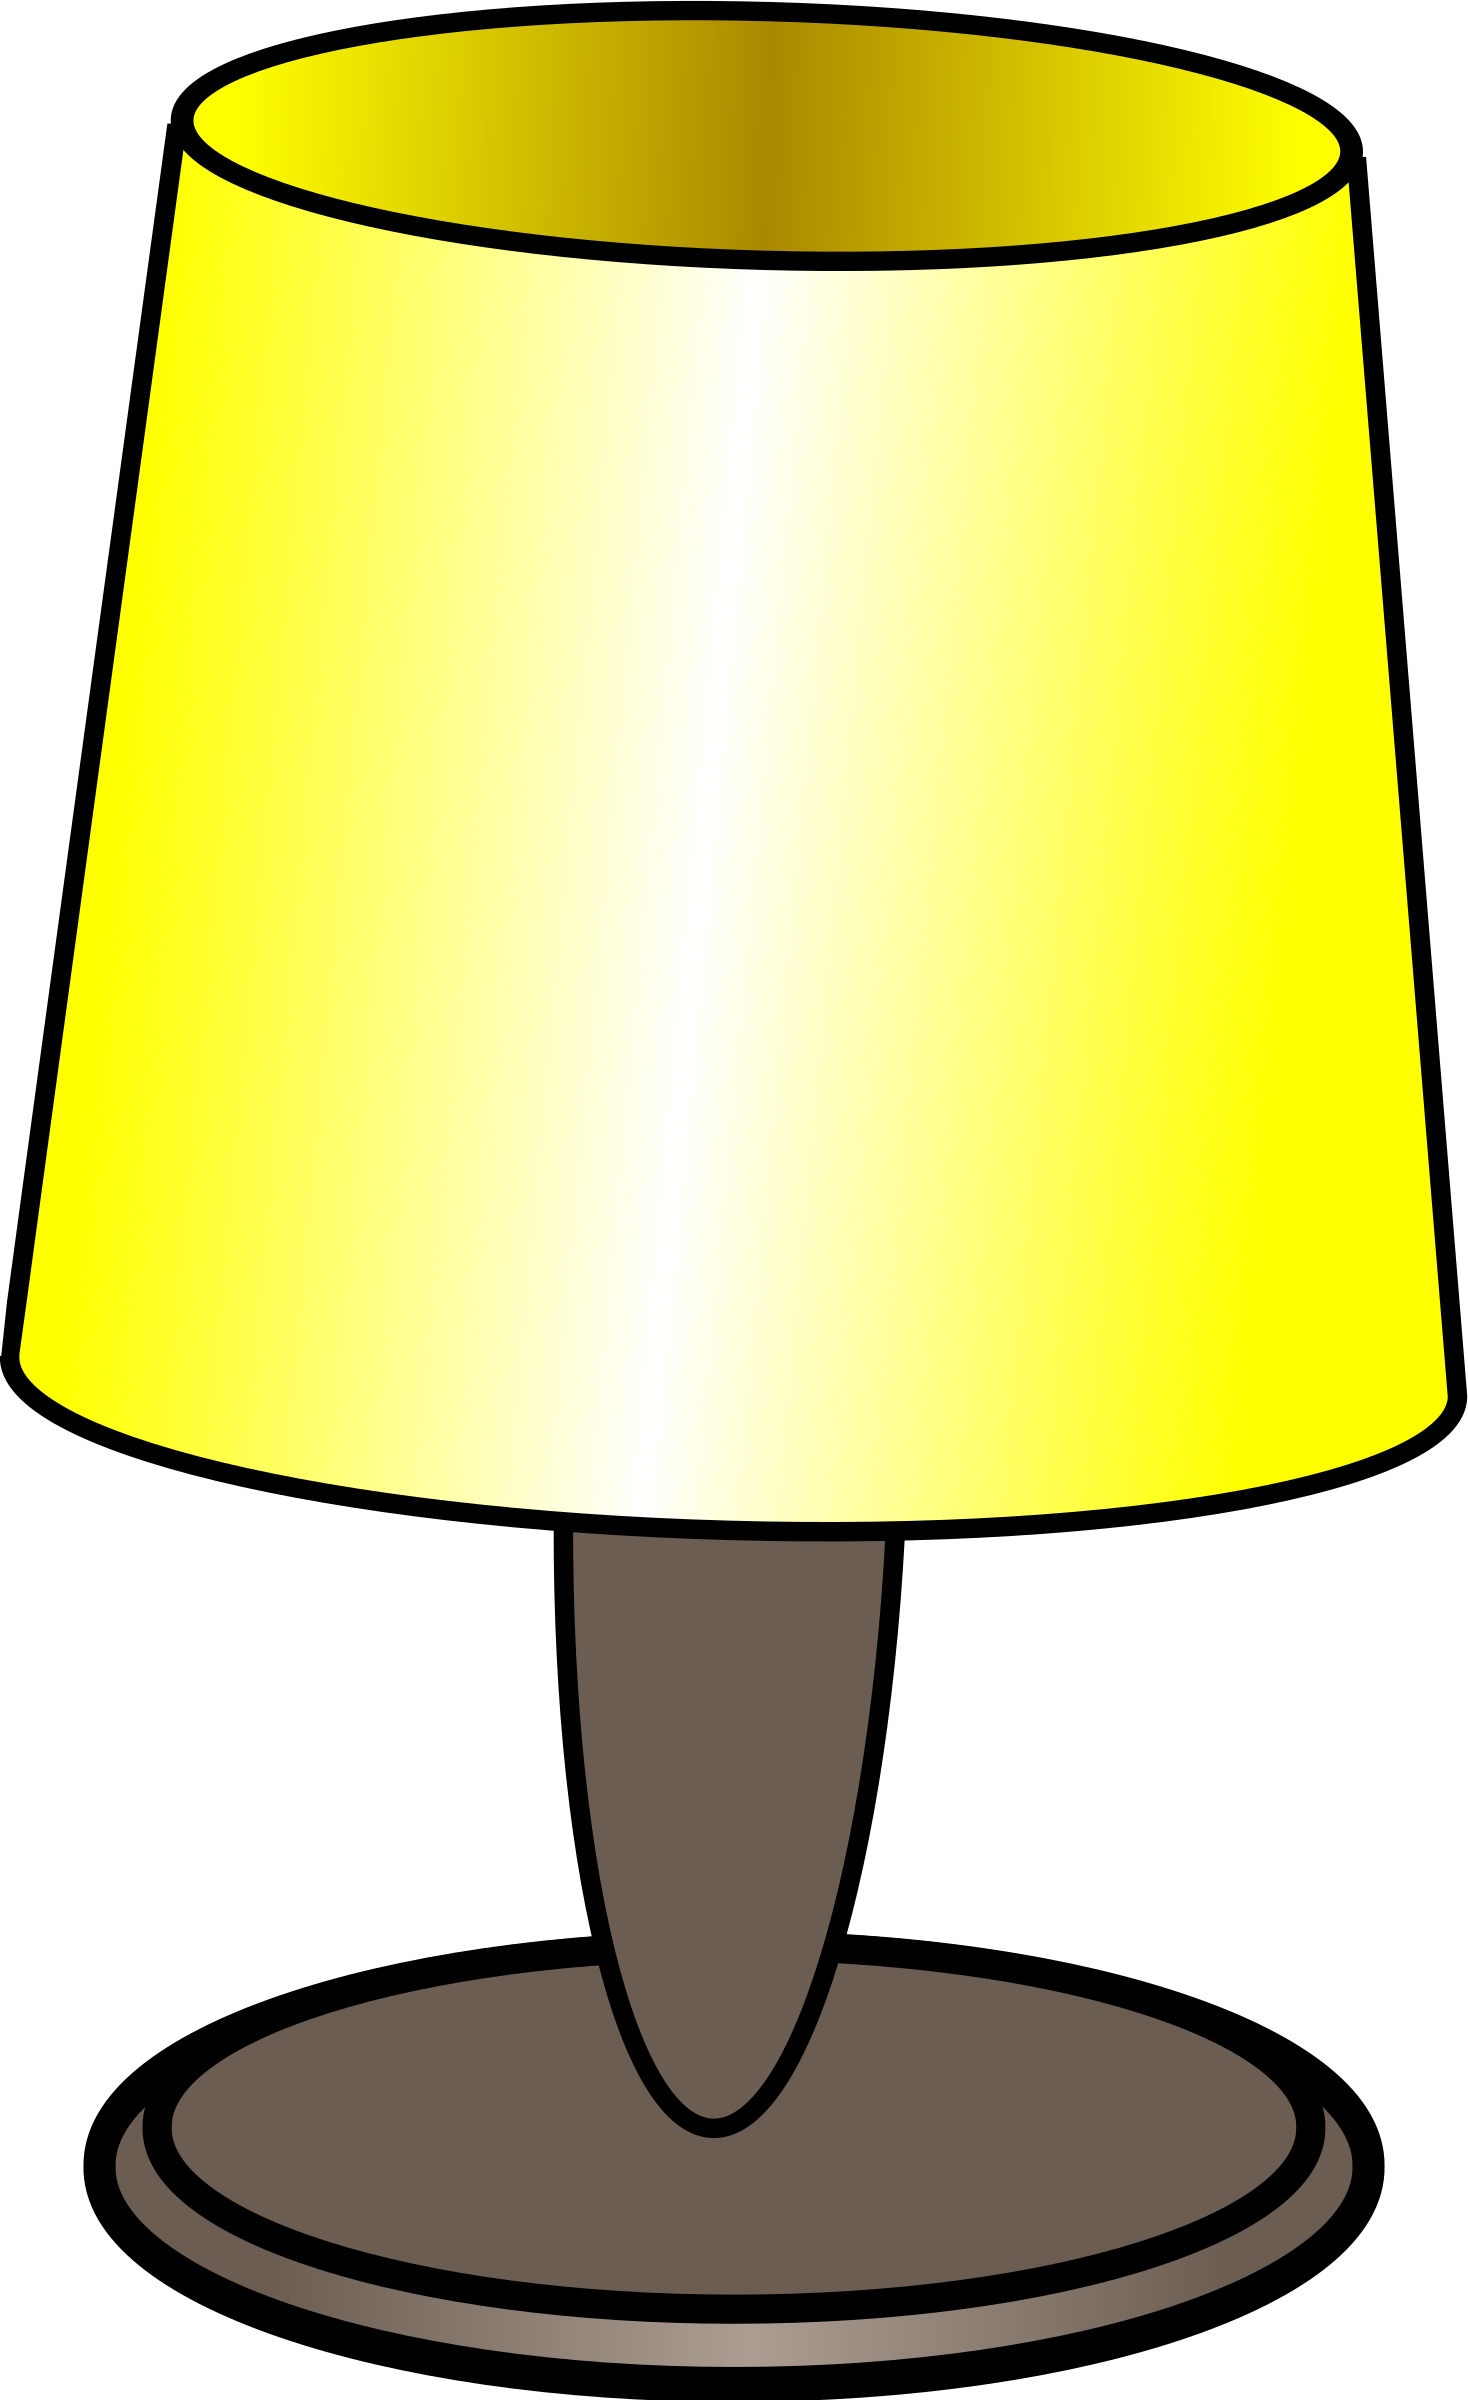 Lamp clipart tall lamp. Table big image png